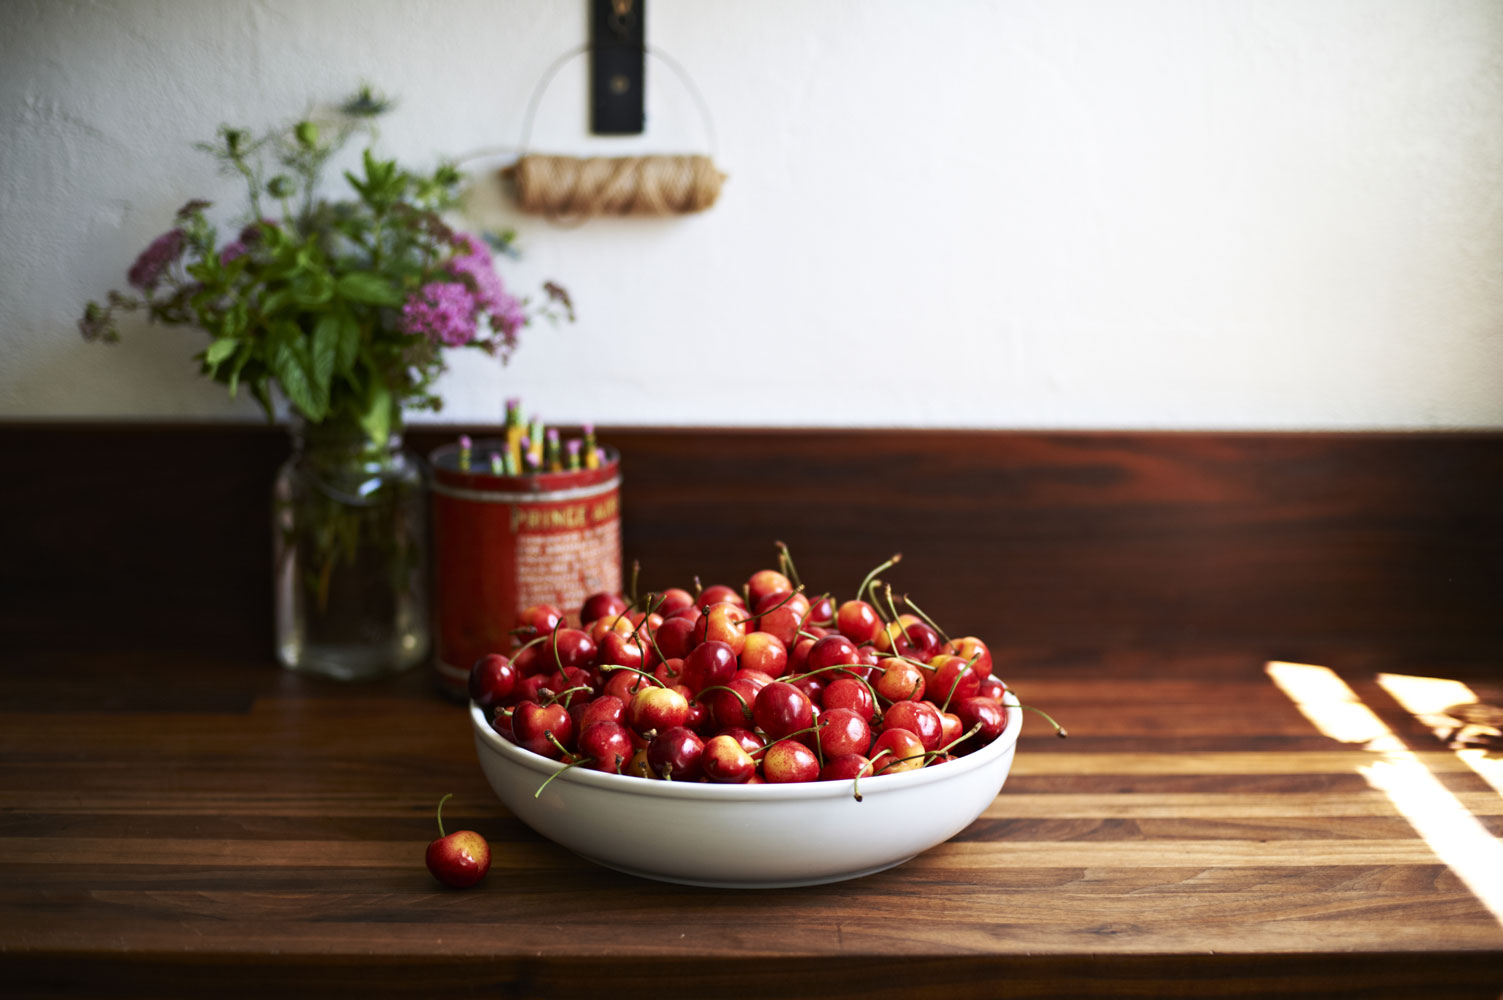 Kitchen Counter With Food Armstrong Pitts Photography  Lifestyle  Armstrongphoto